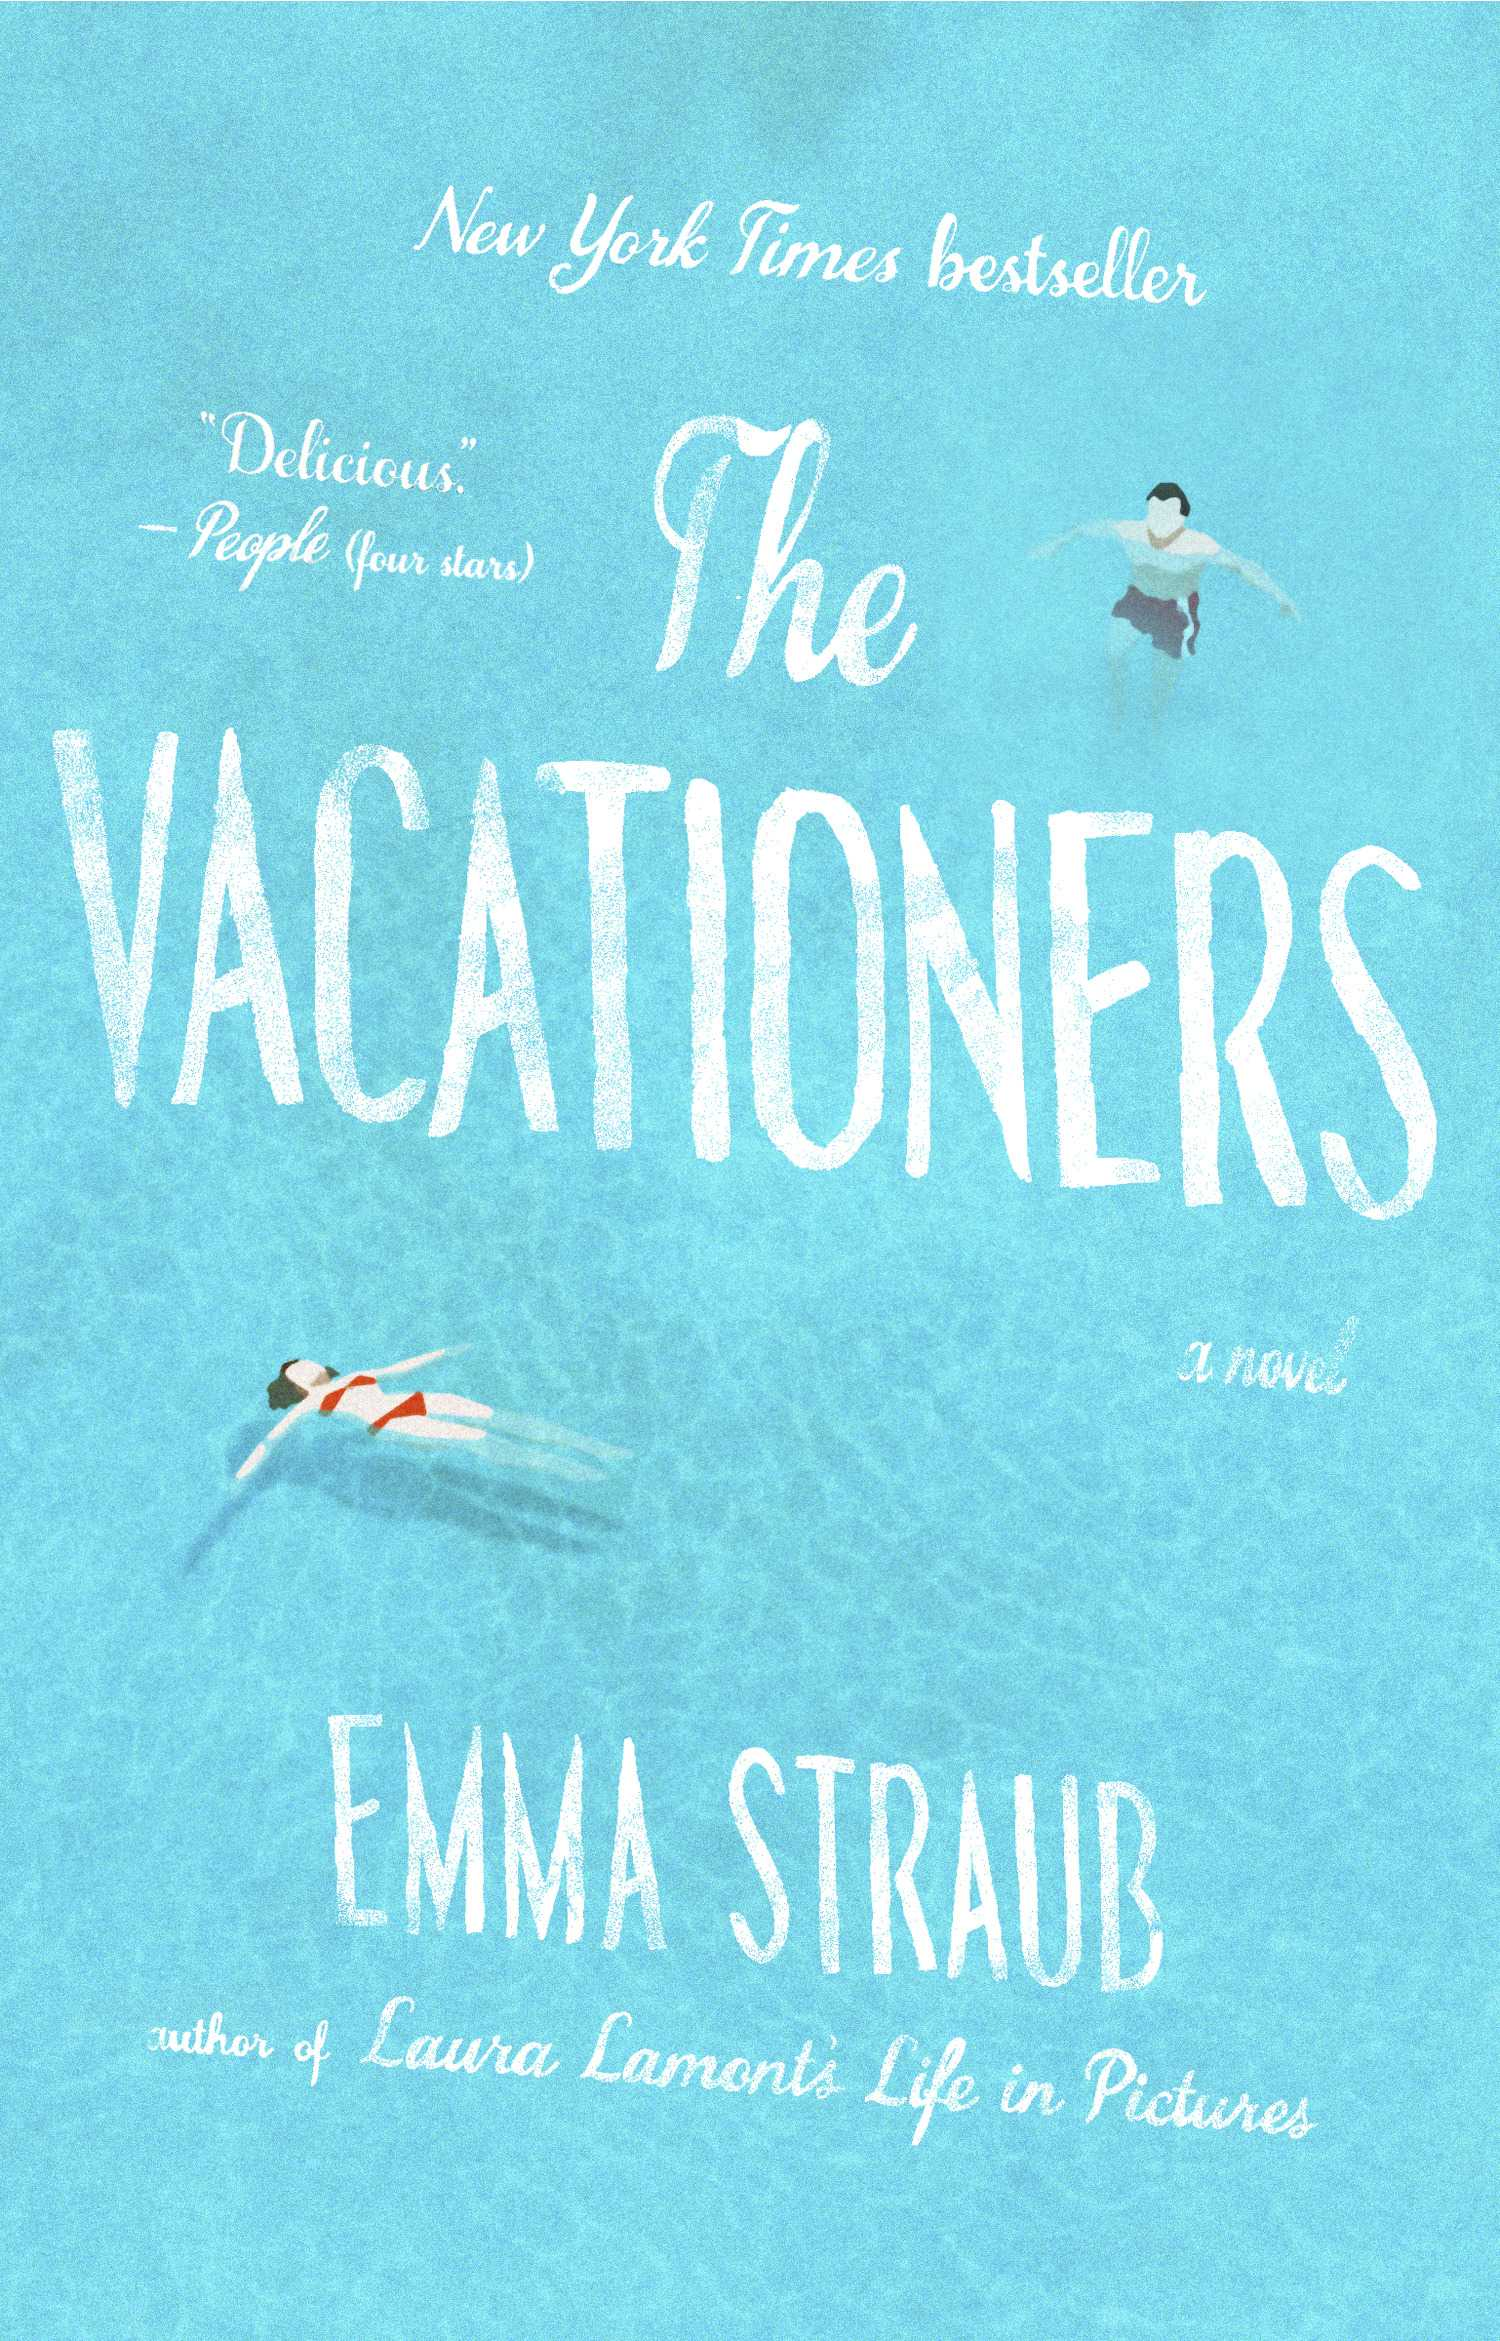 books to read when travelling. the vacationers